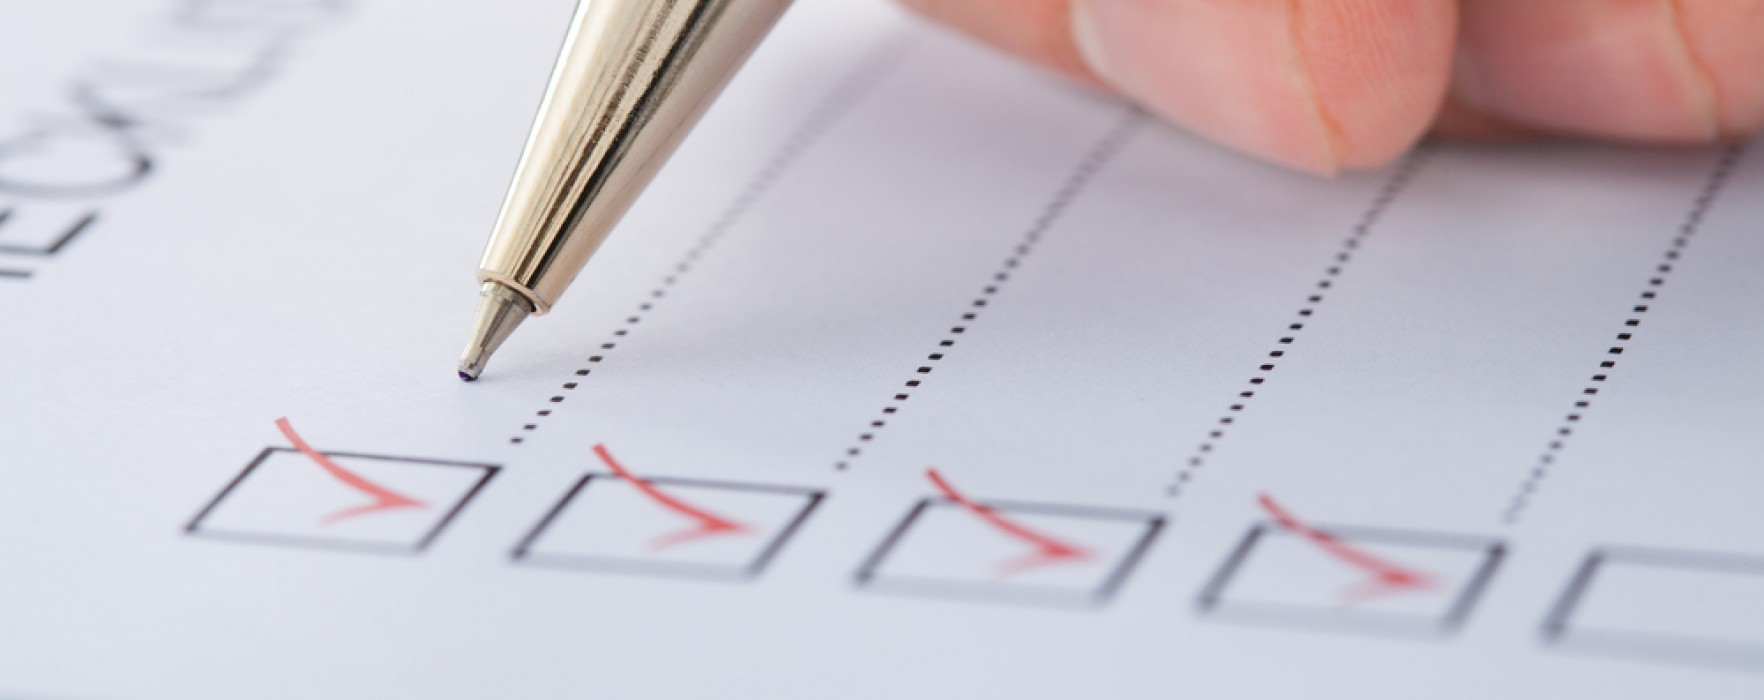 Home Sellers Checklist for Closing on a Home